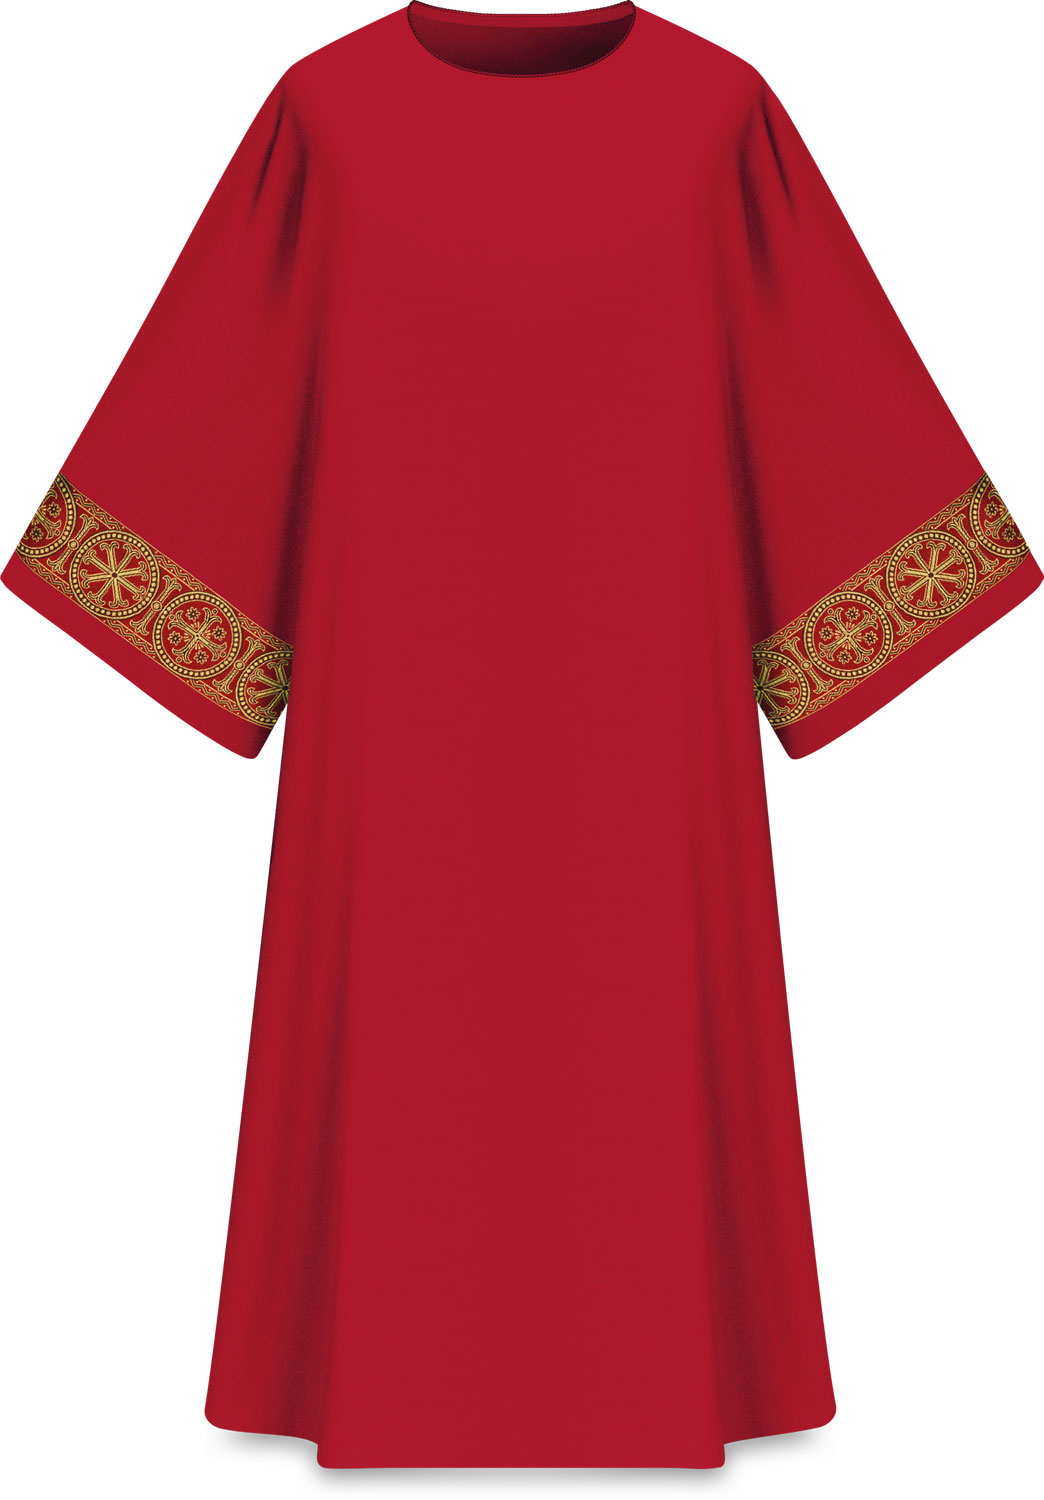 Dalmatic | Red | ASSISI by SLABBINCK